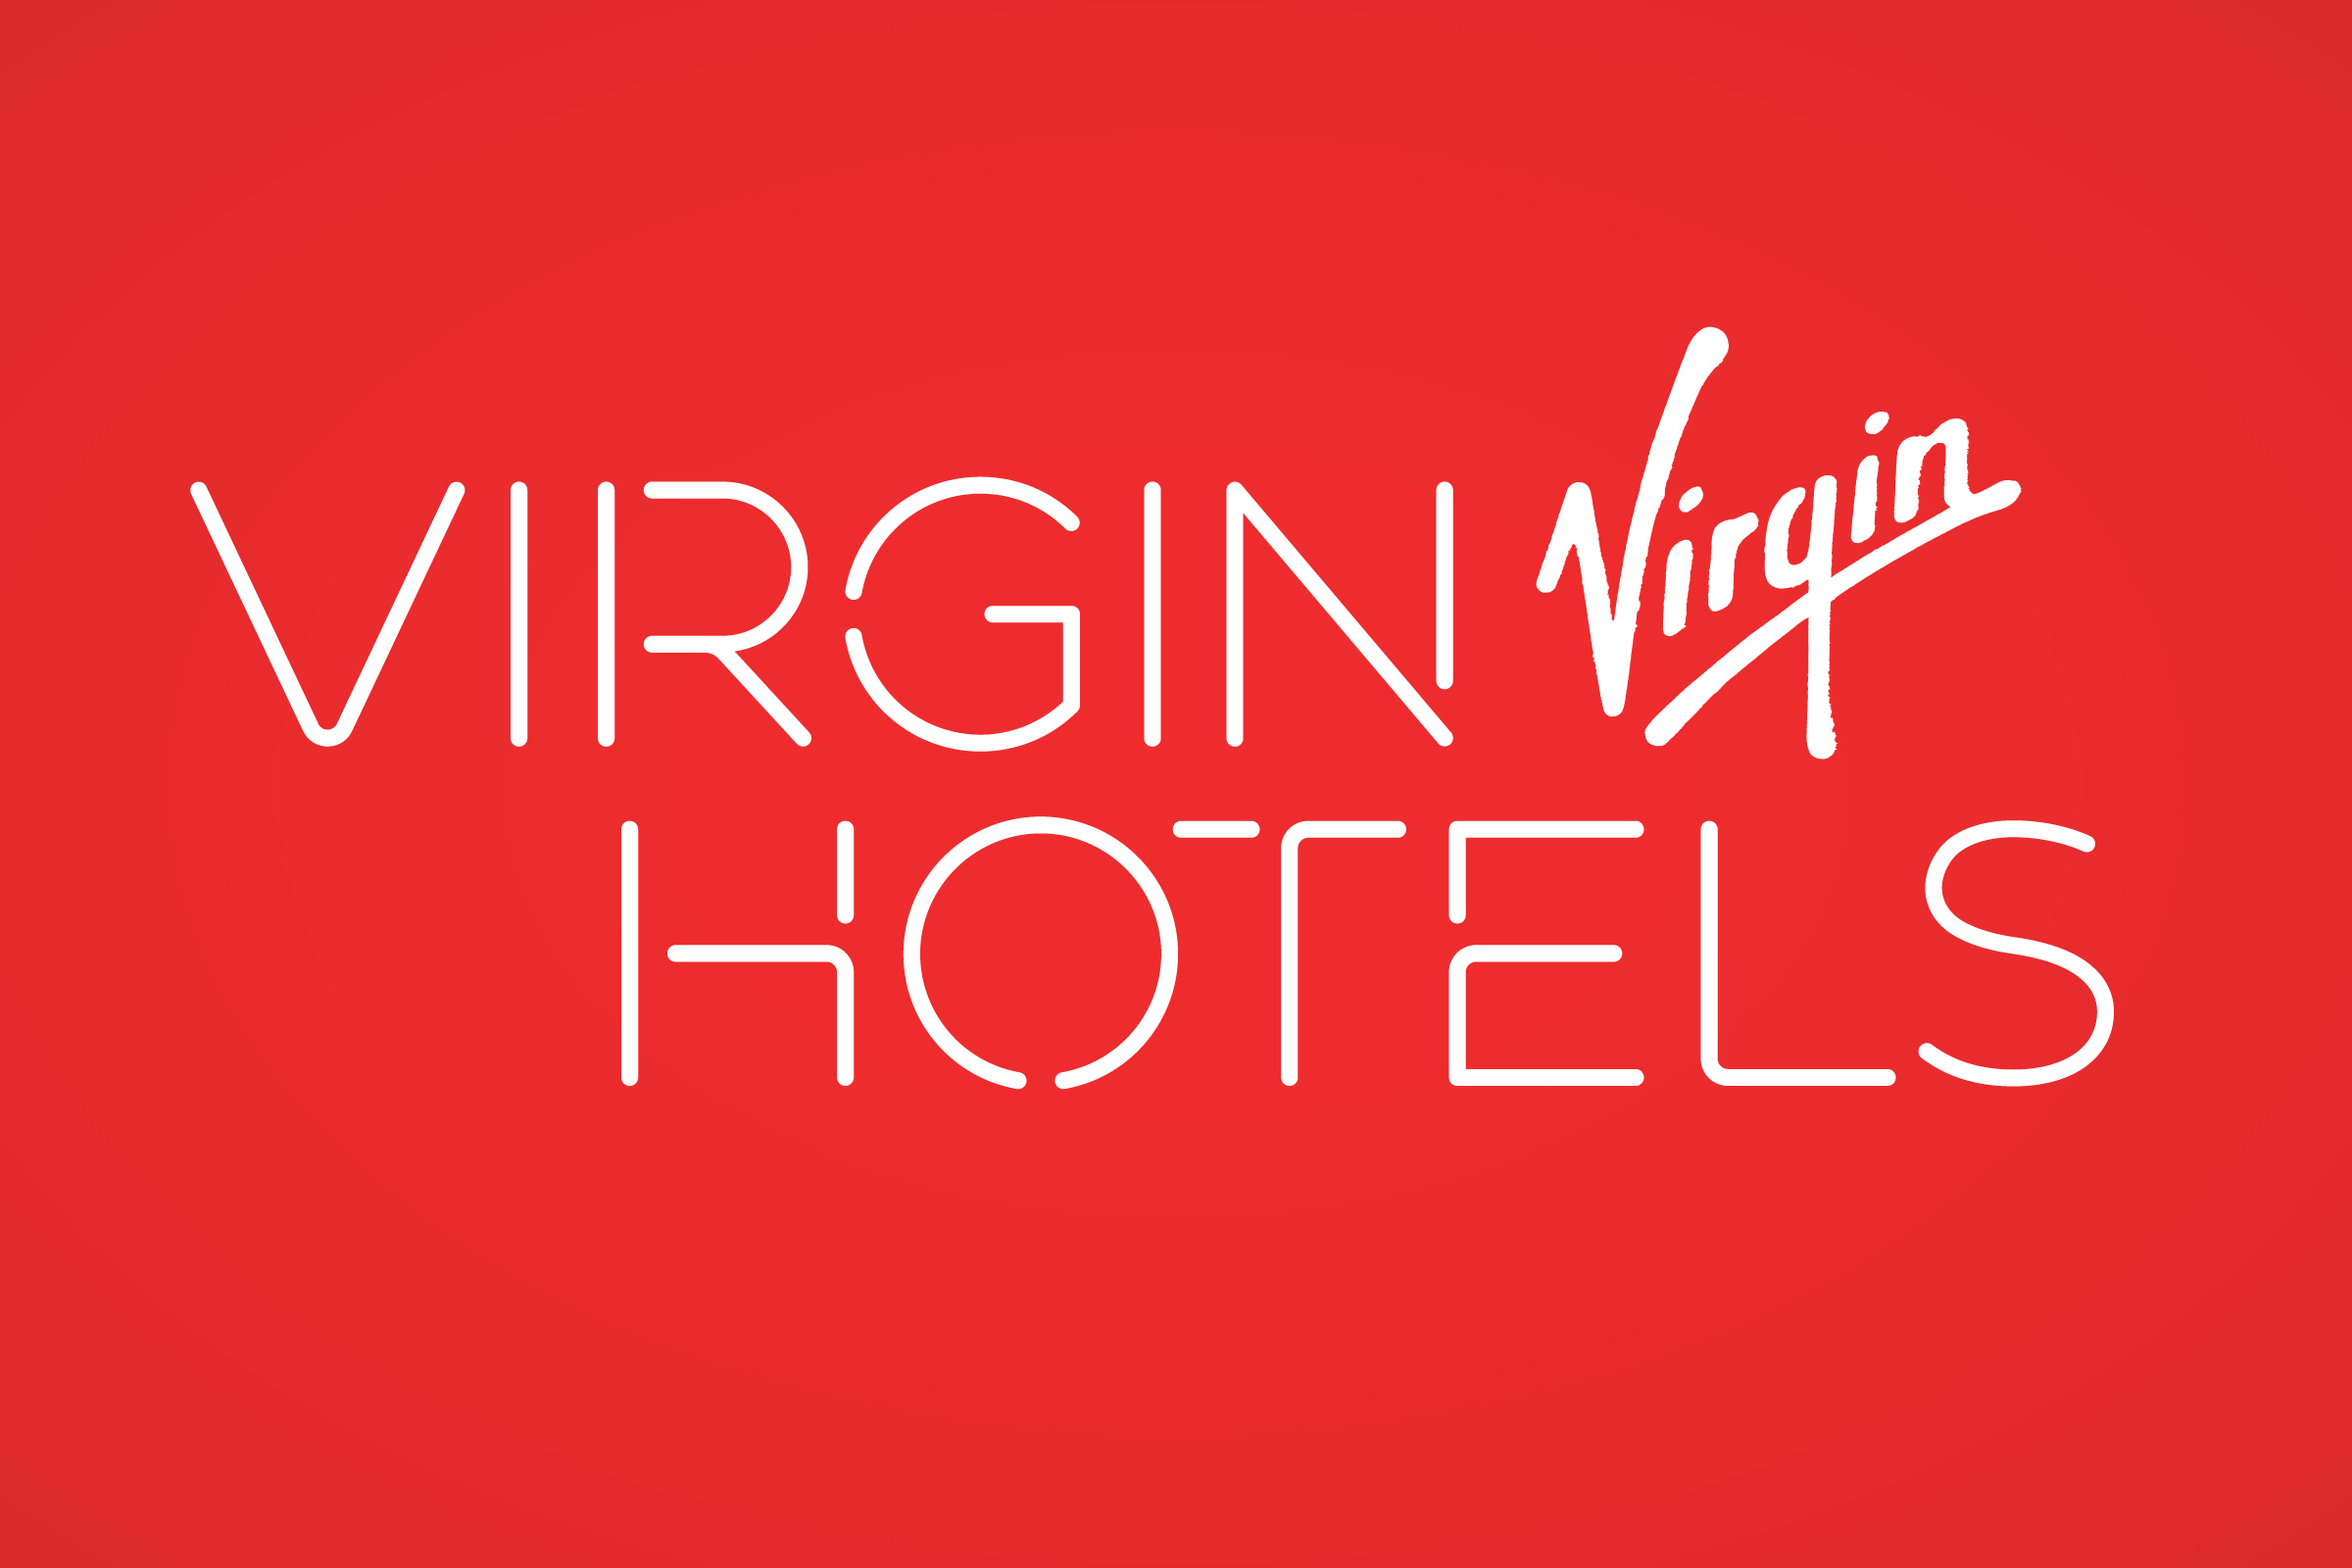 Logo for Virgin Hotels on red background